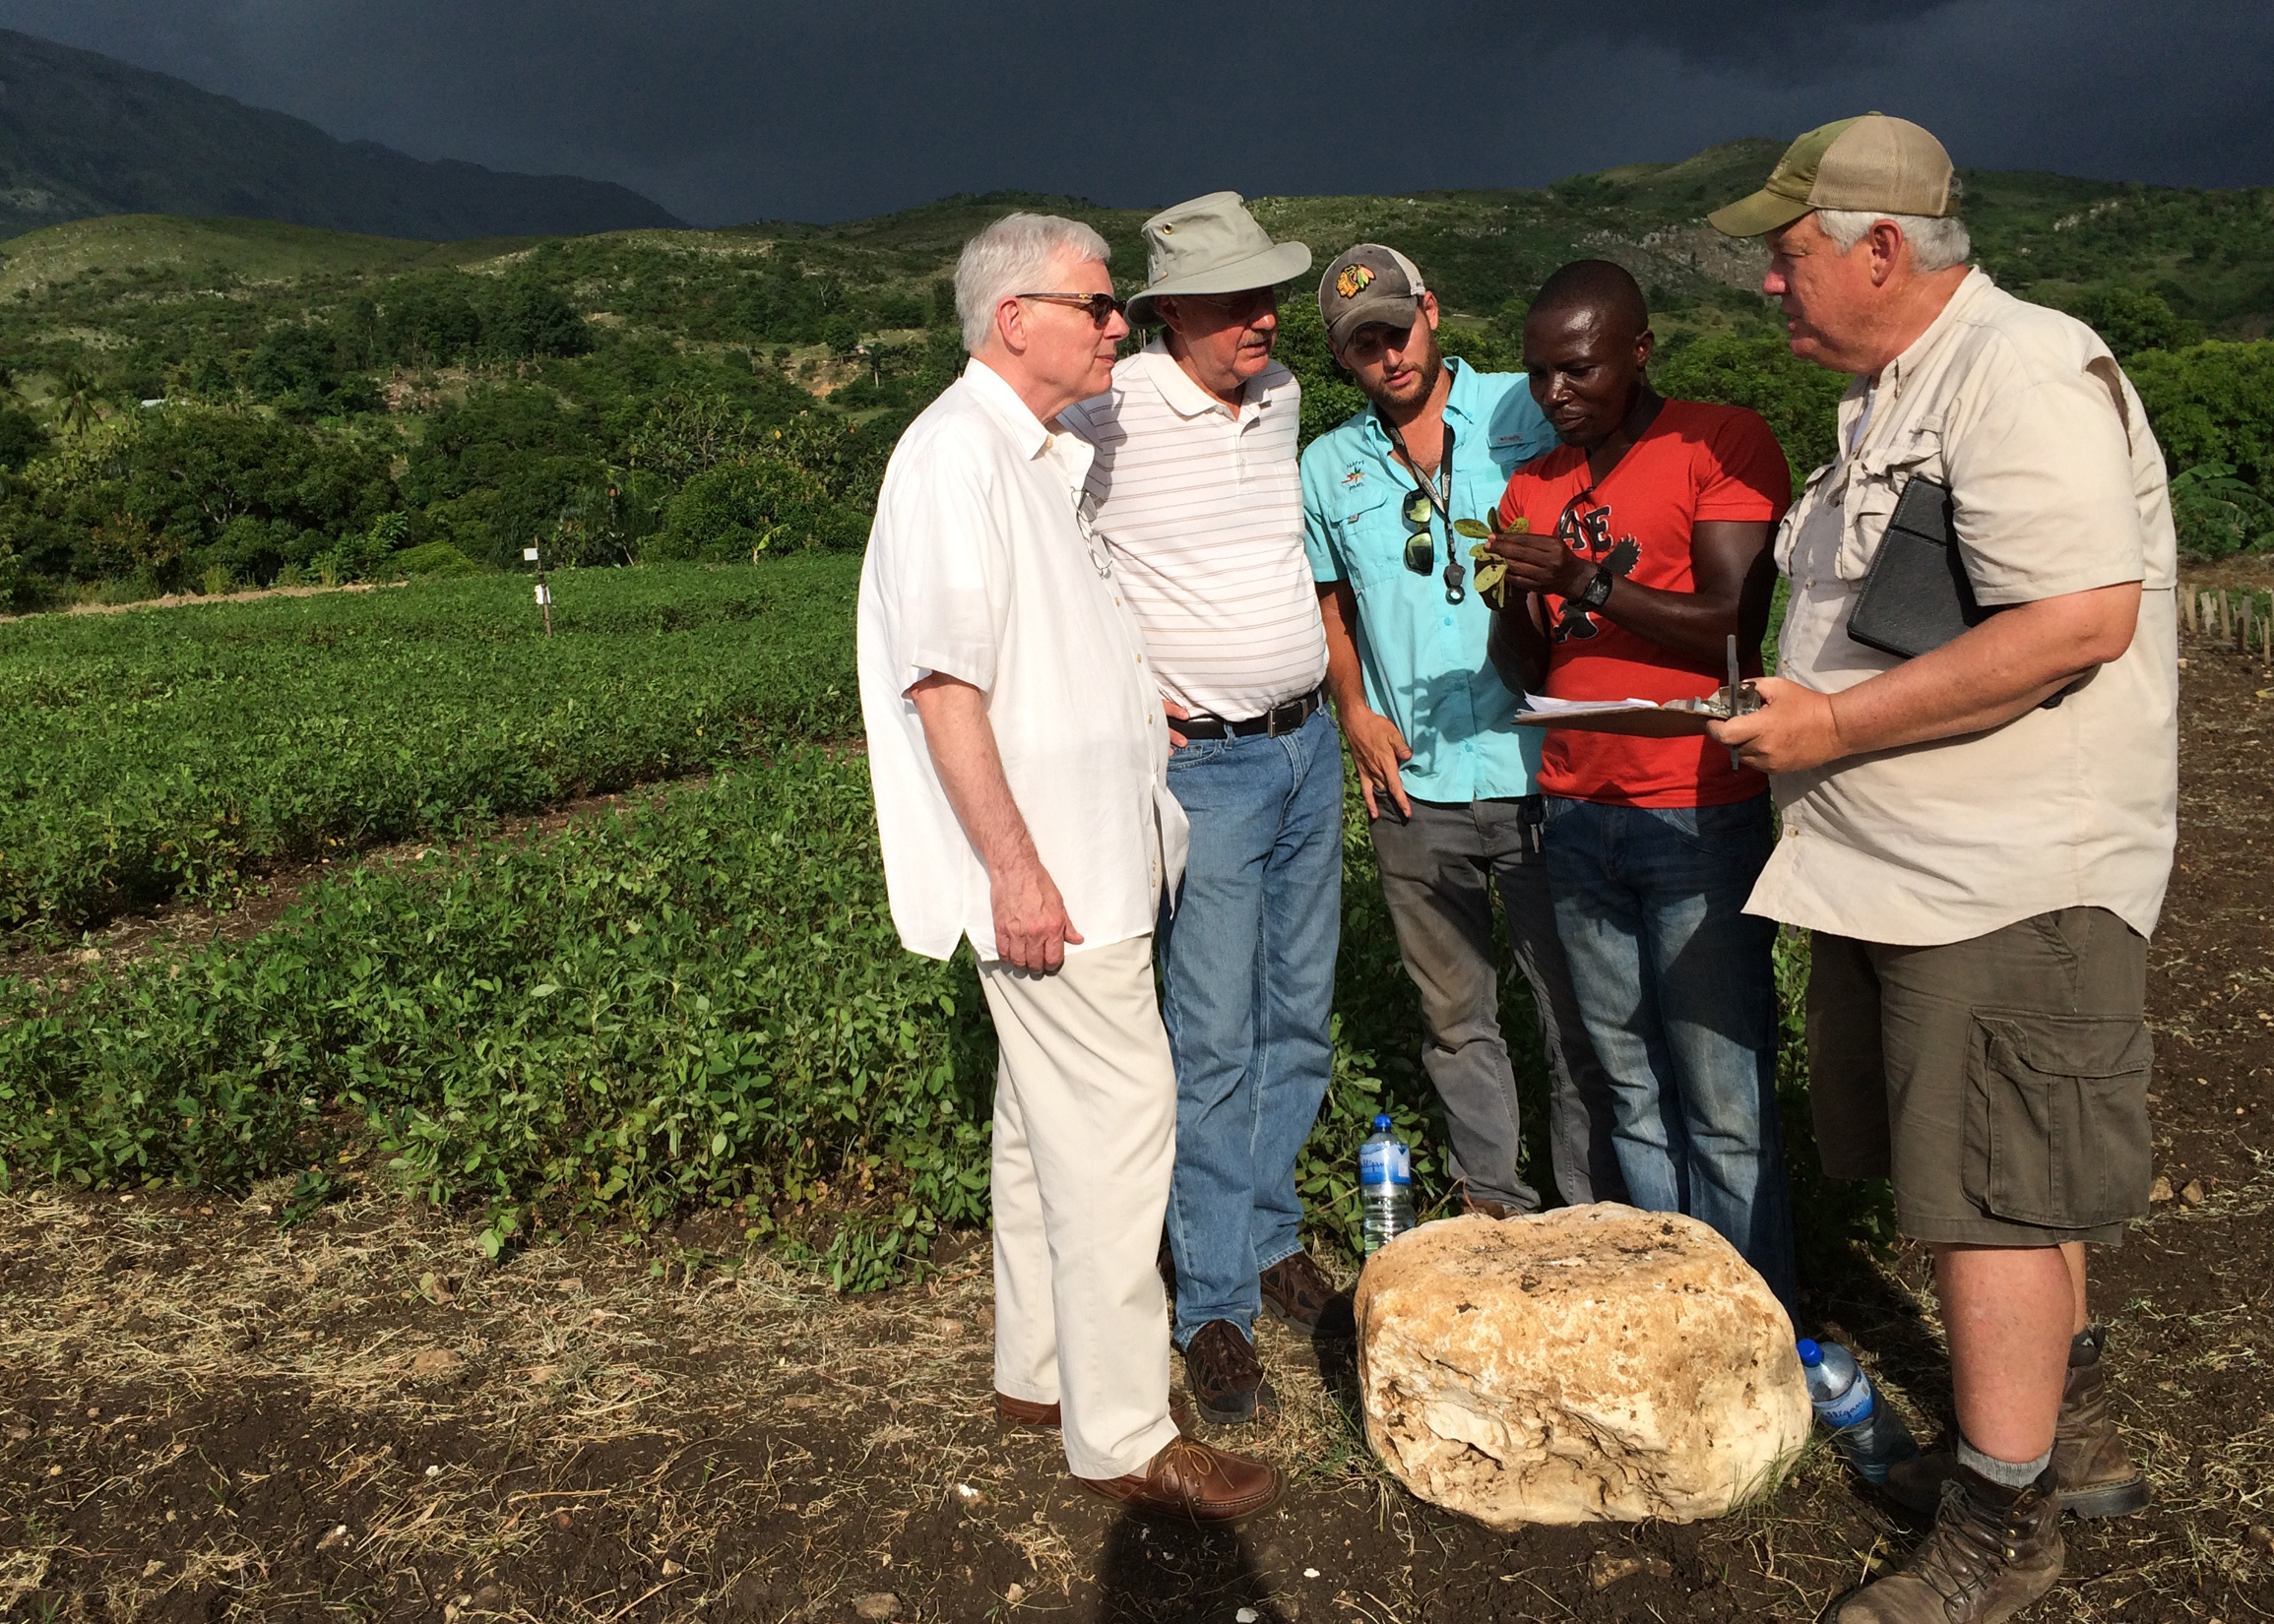 Left to Right: UGA College of Agricultural and Environmental Science Dean J. Scott Angle, PMIL Director Dave Hoisington, Food for Kids Ag Research Specialist Will Sheard, Meds and Food for Kids agronomist Jean Phillipe Dorzin and UGA peanut pathologist Bob Kemerait.